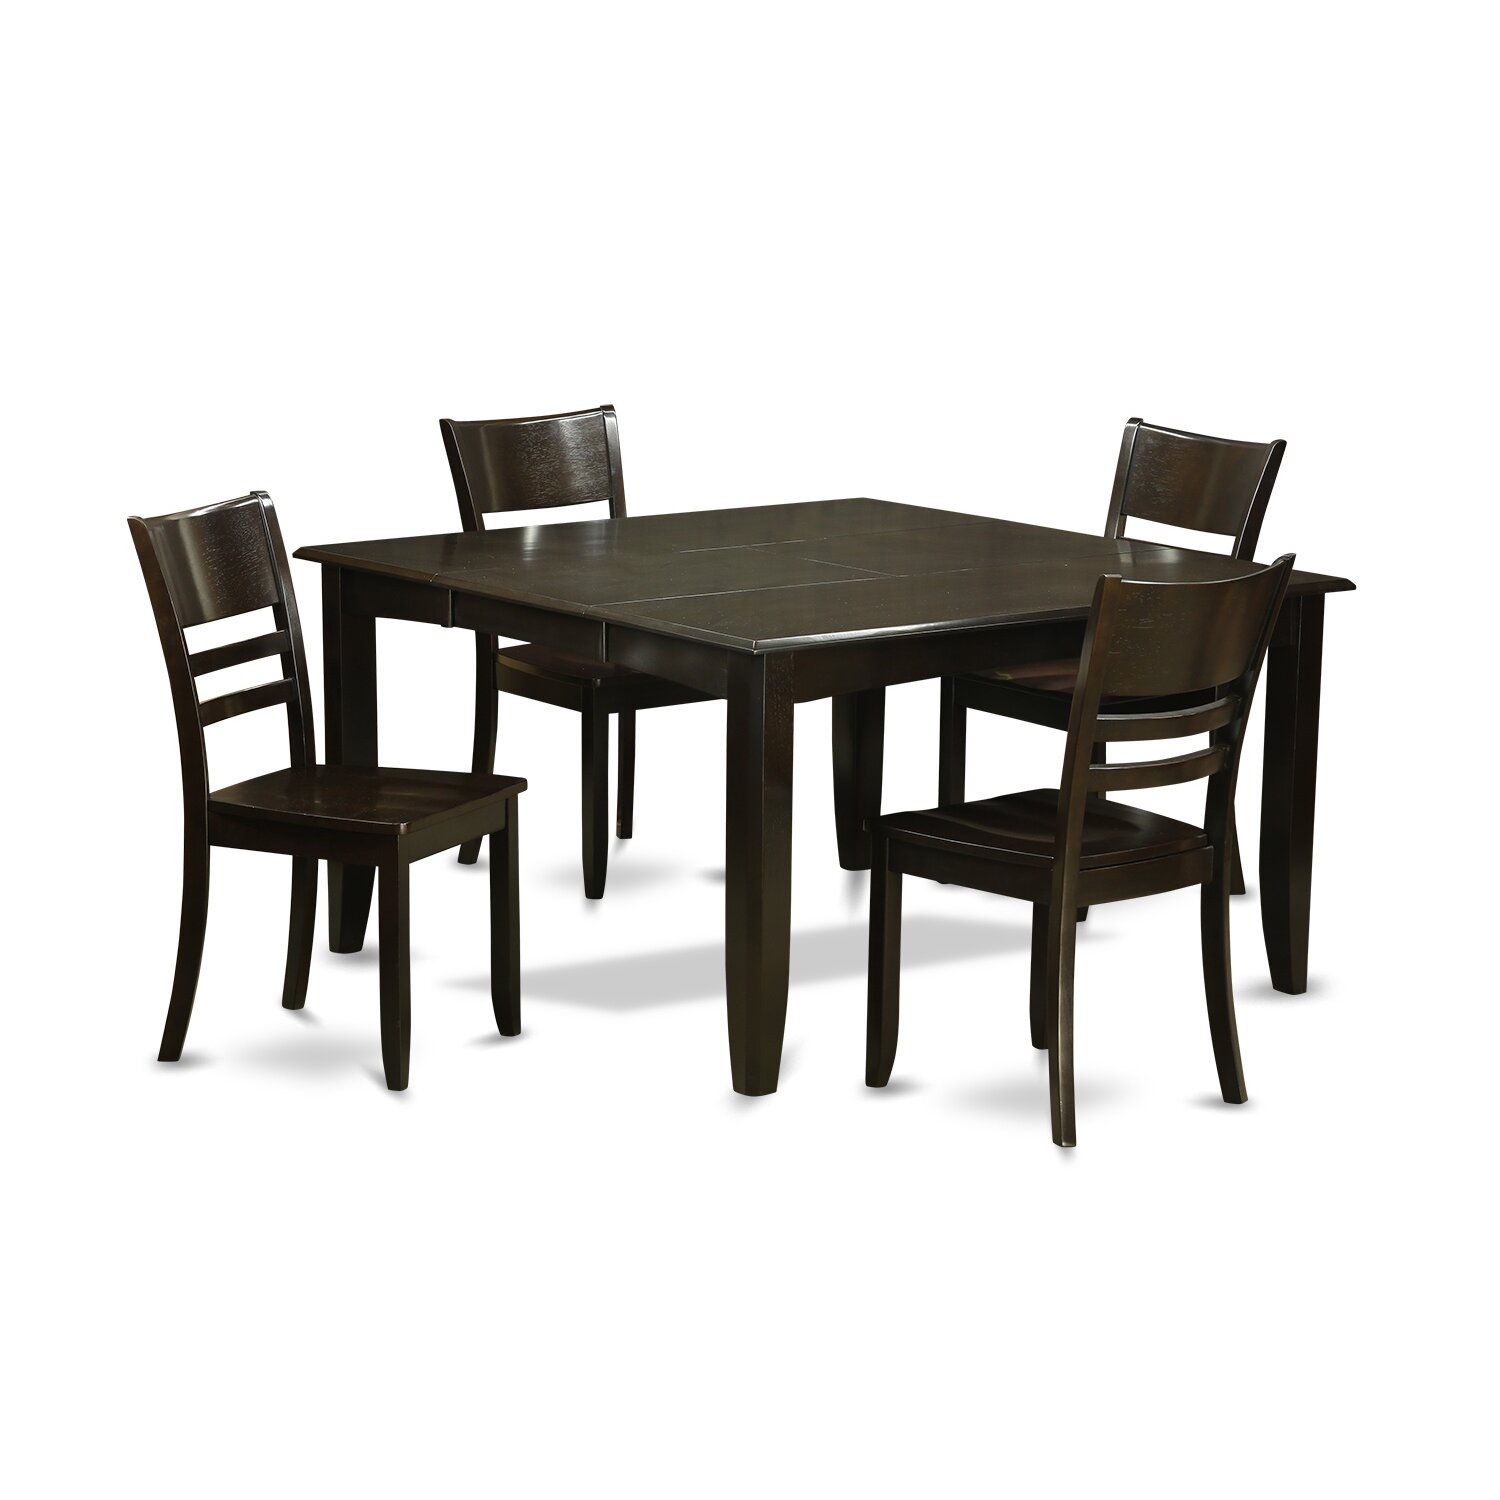 Wooden importers parfait 5 piece dining set wayfair for Furniture kitchen set